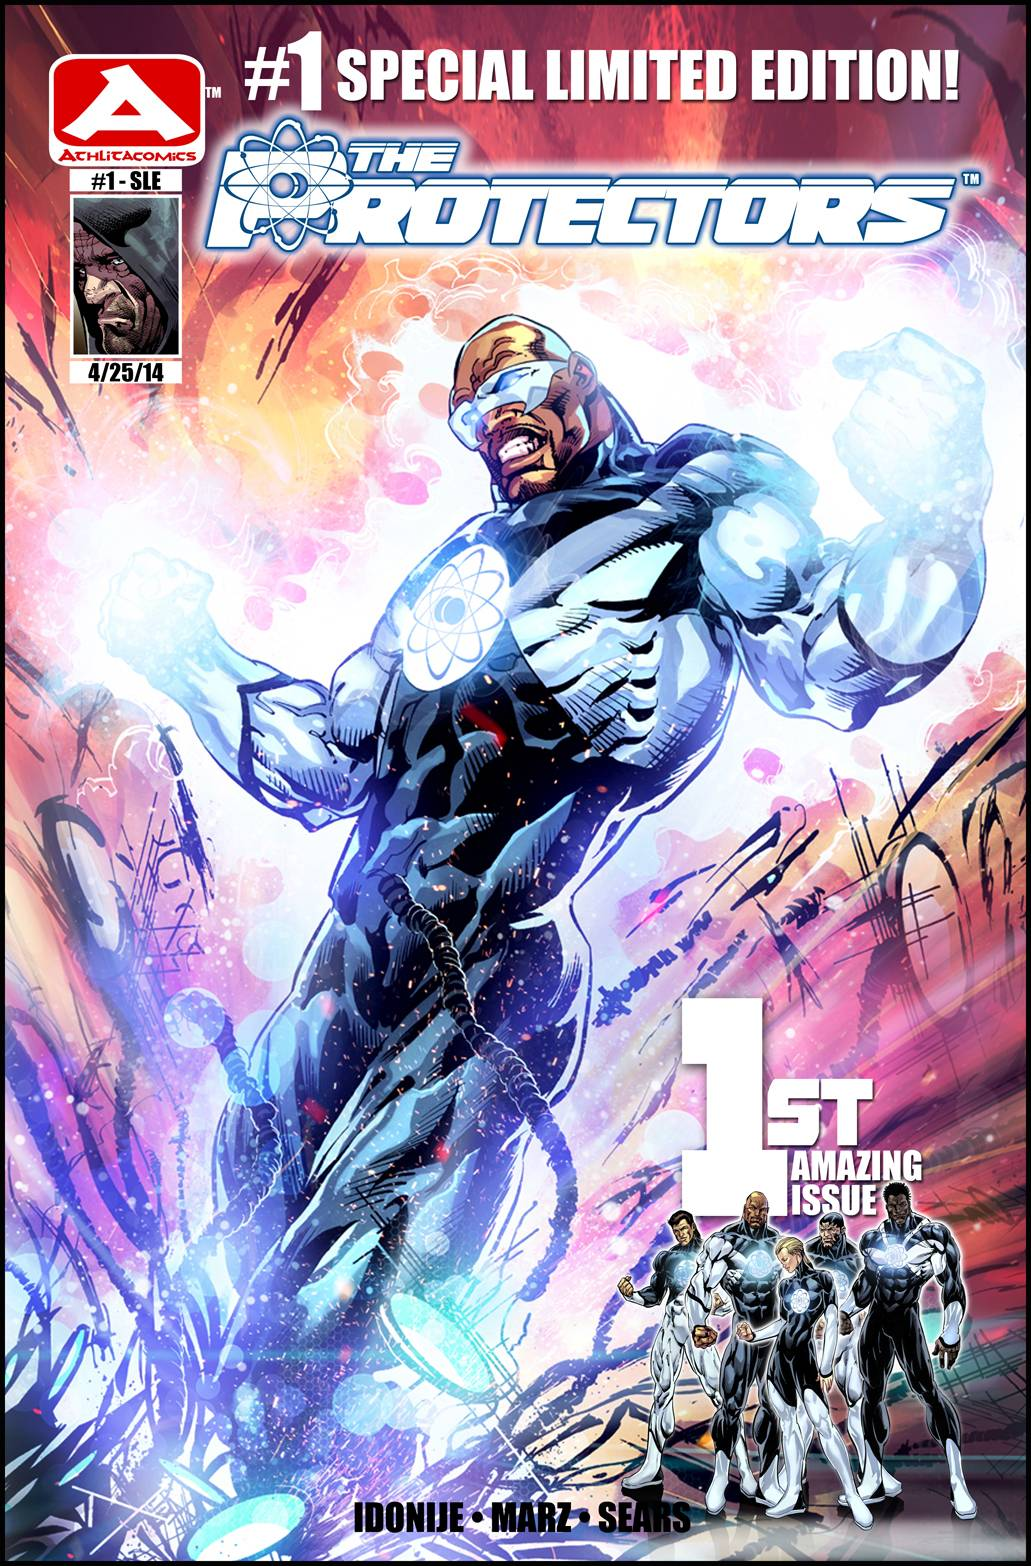 Cover of The ProtectorsAthlitacomics